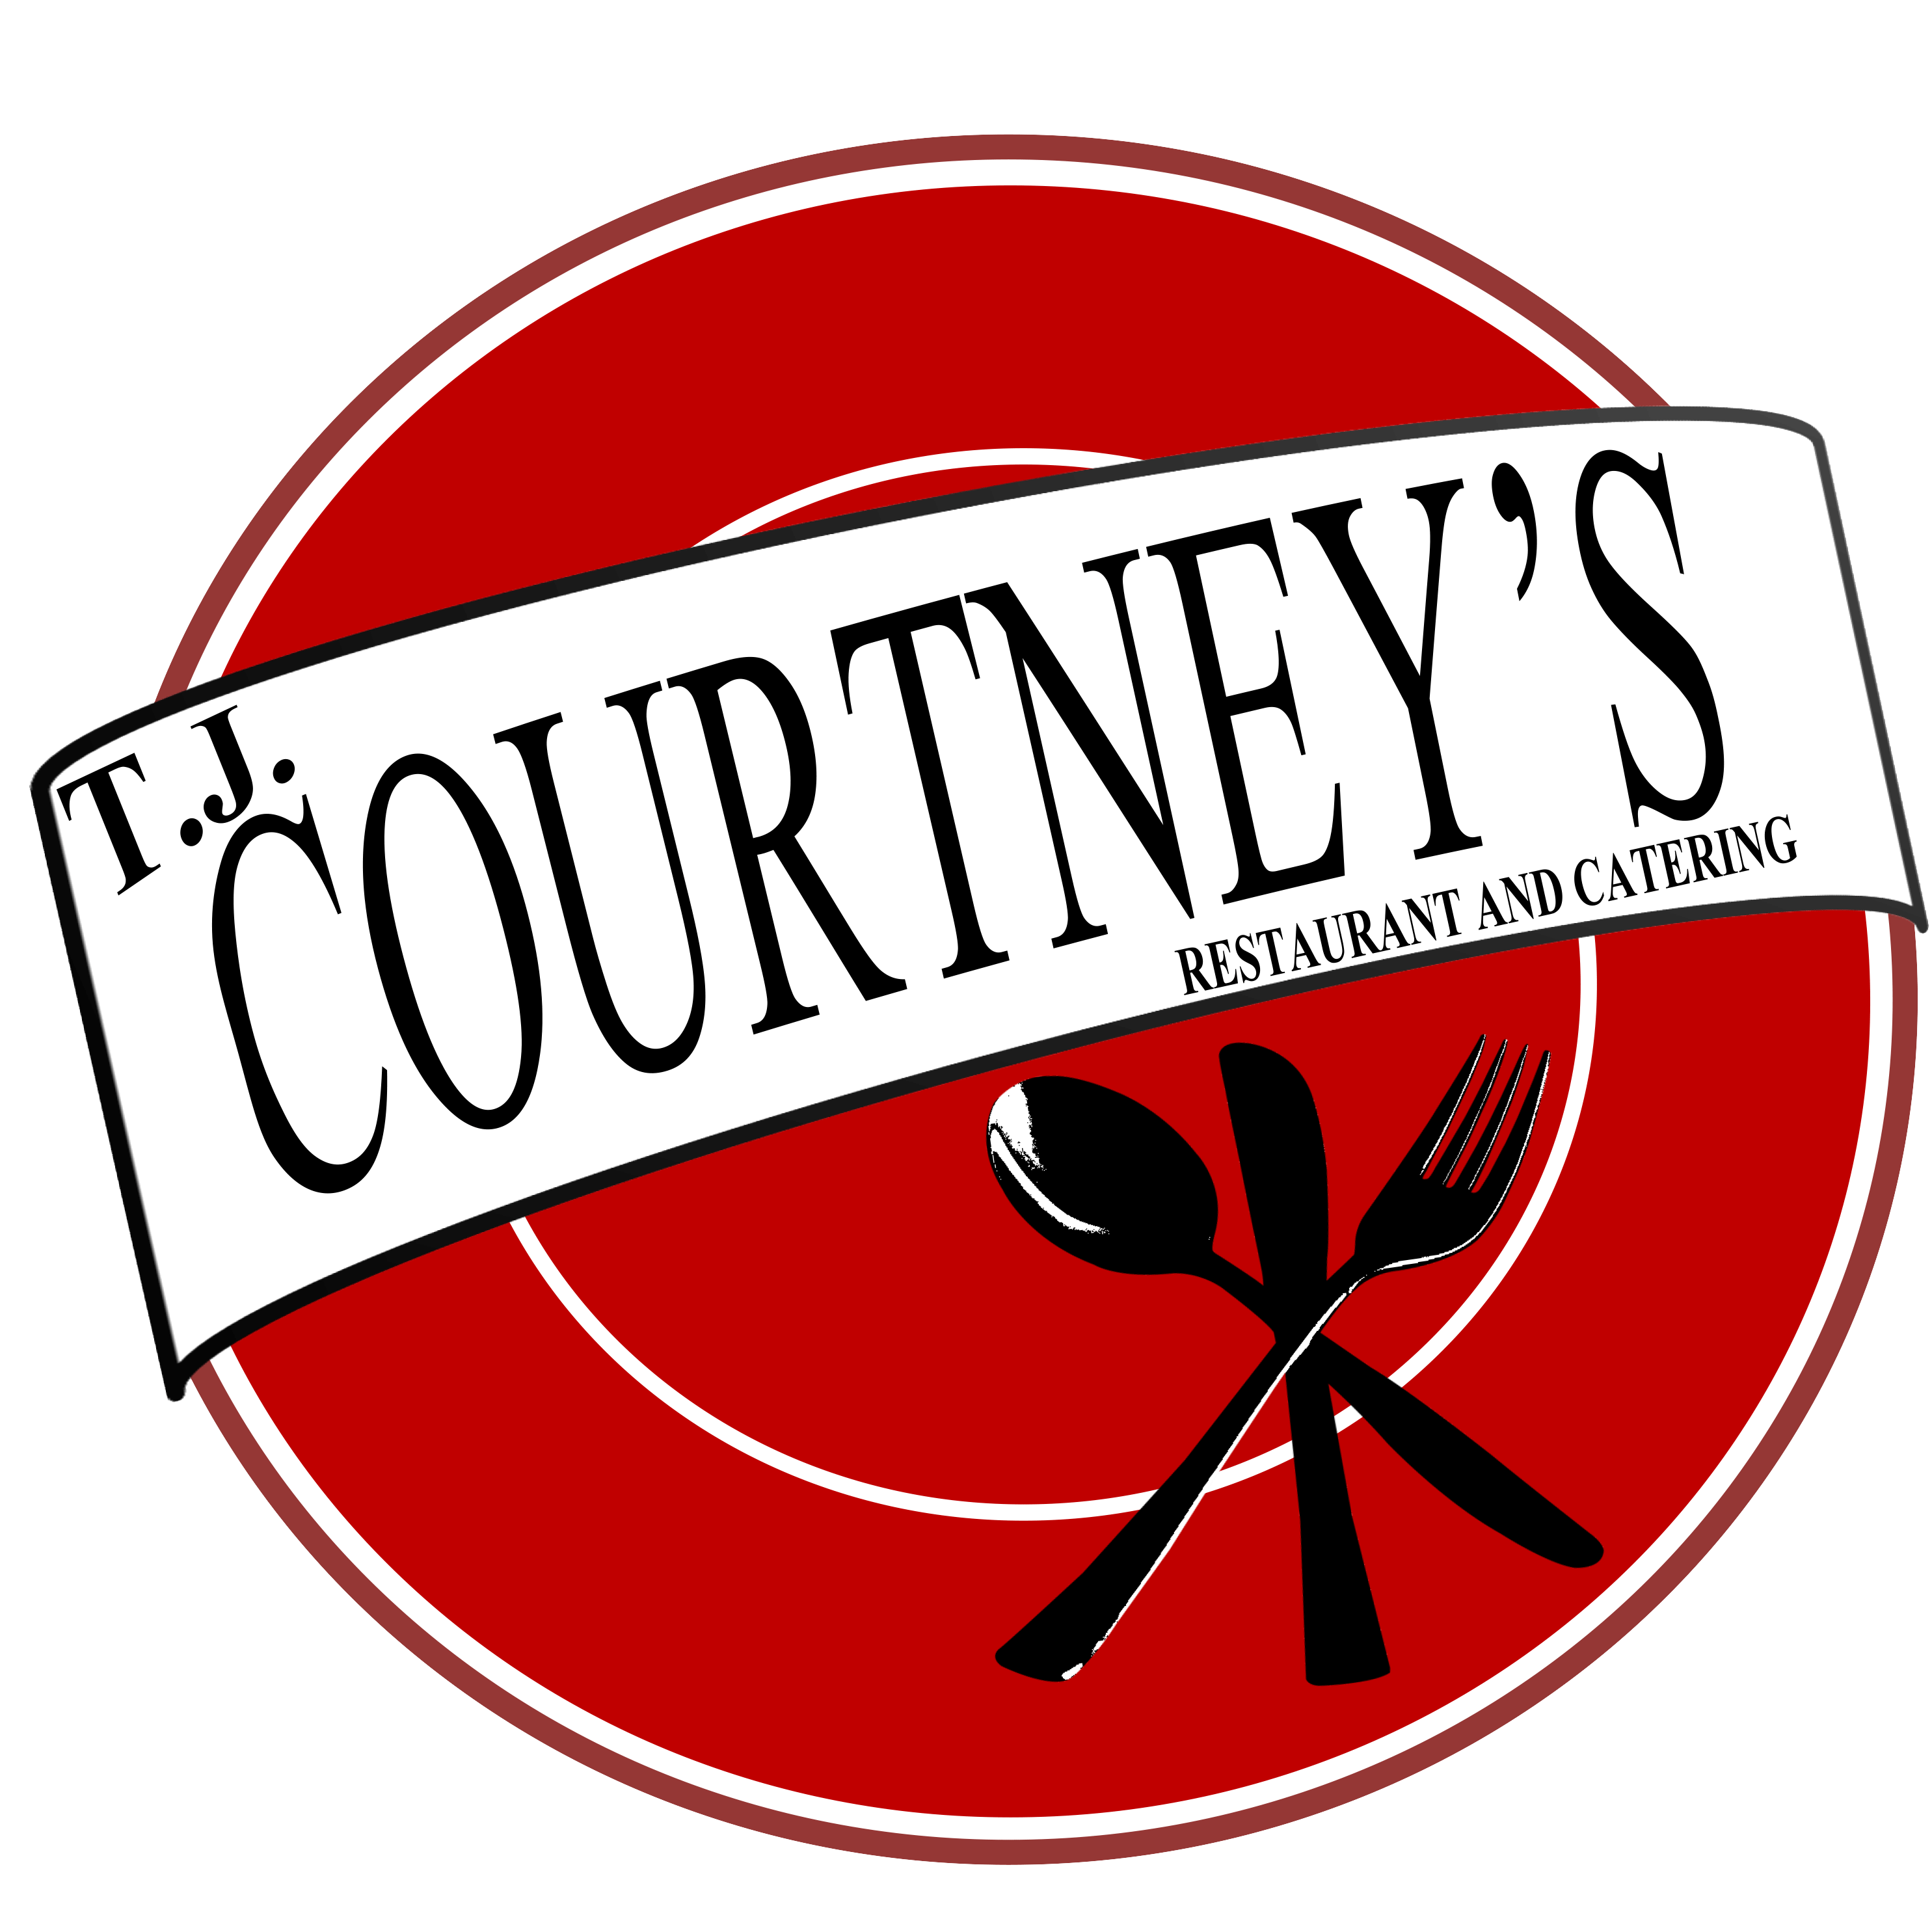 T.J. Courtney's Restaurant and Catering